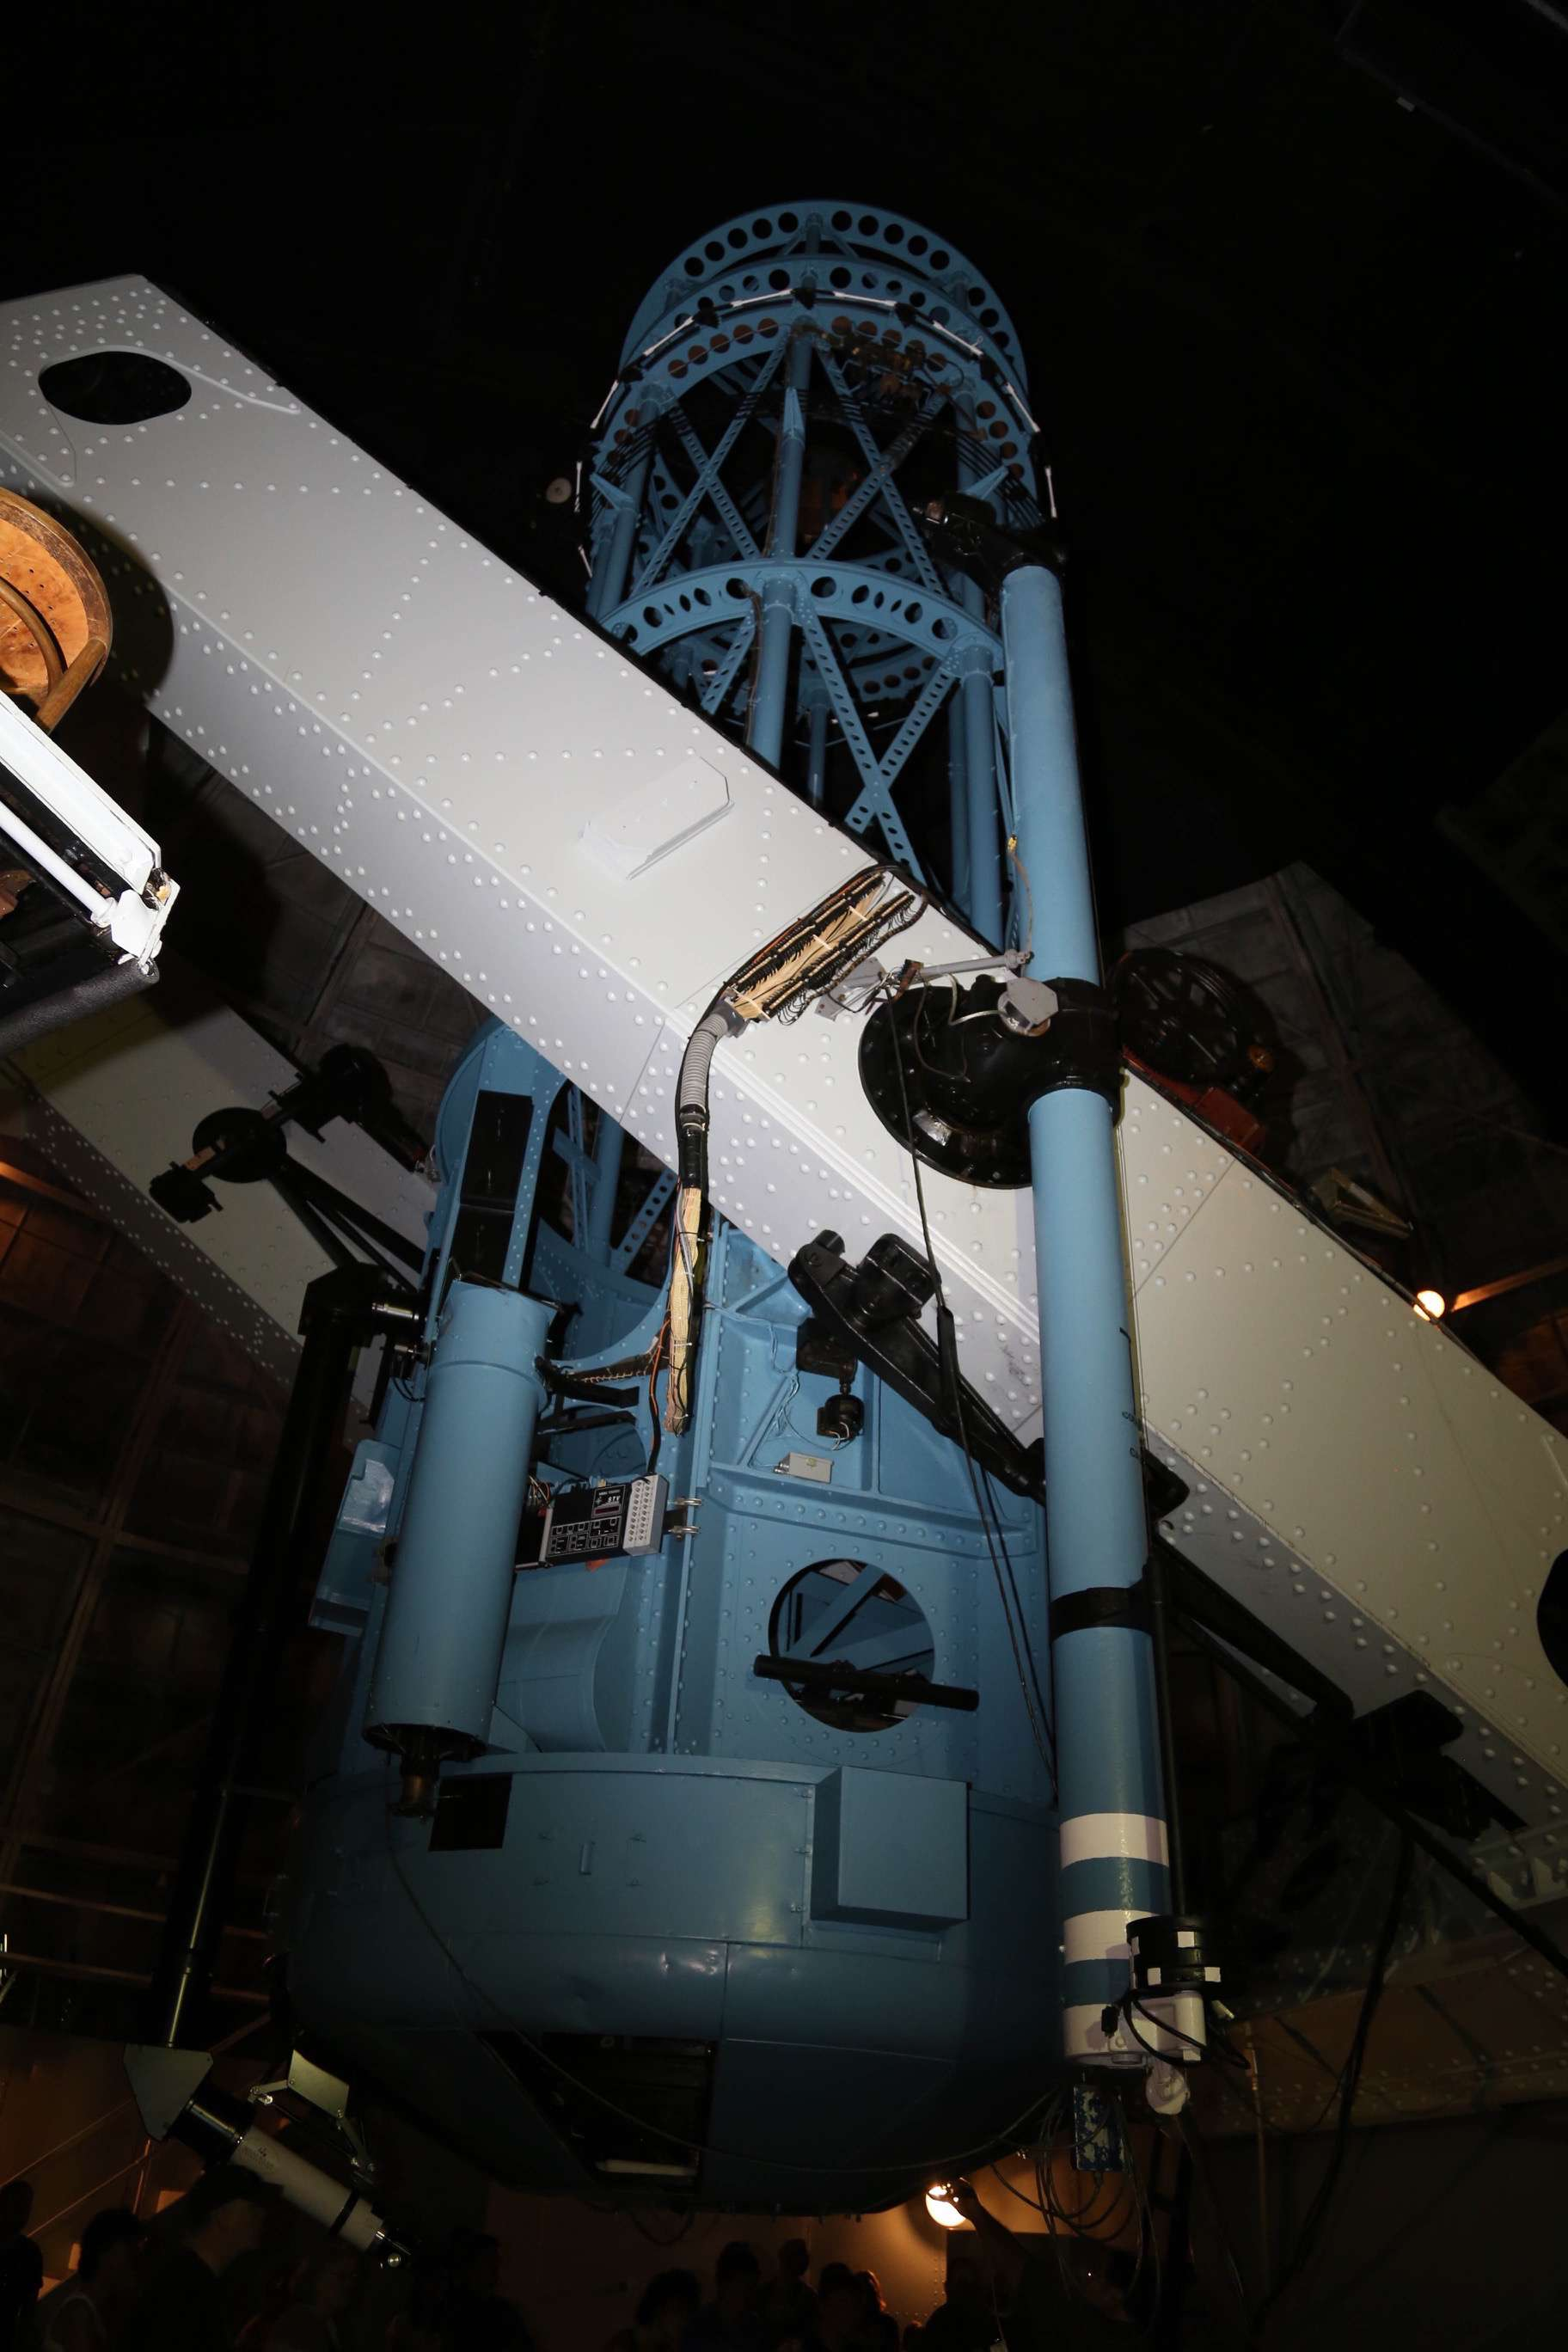 For decades, the Hooker telescope, with its 100-inch mirror was the largest telescope in the world.